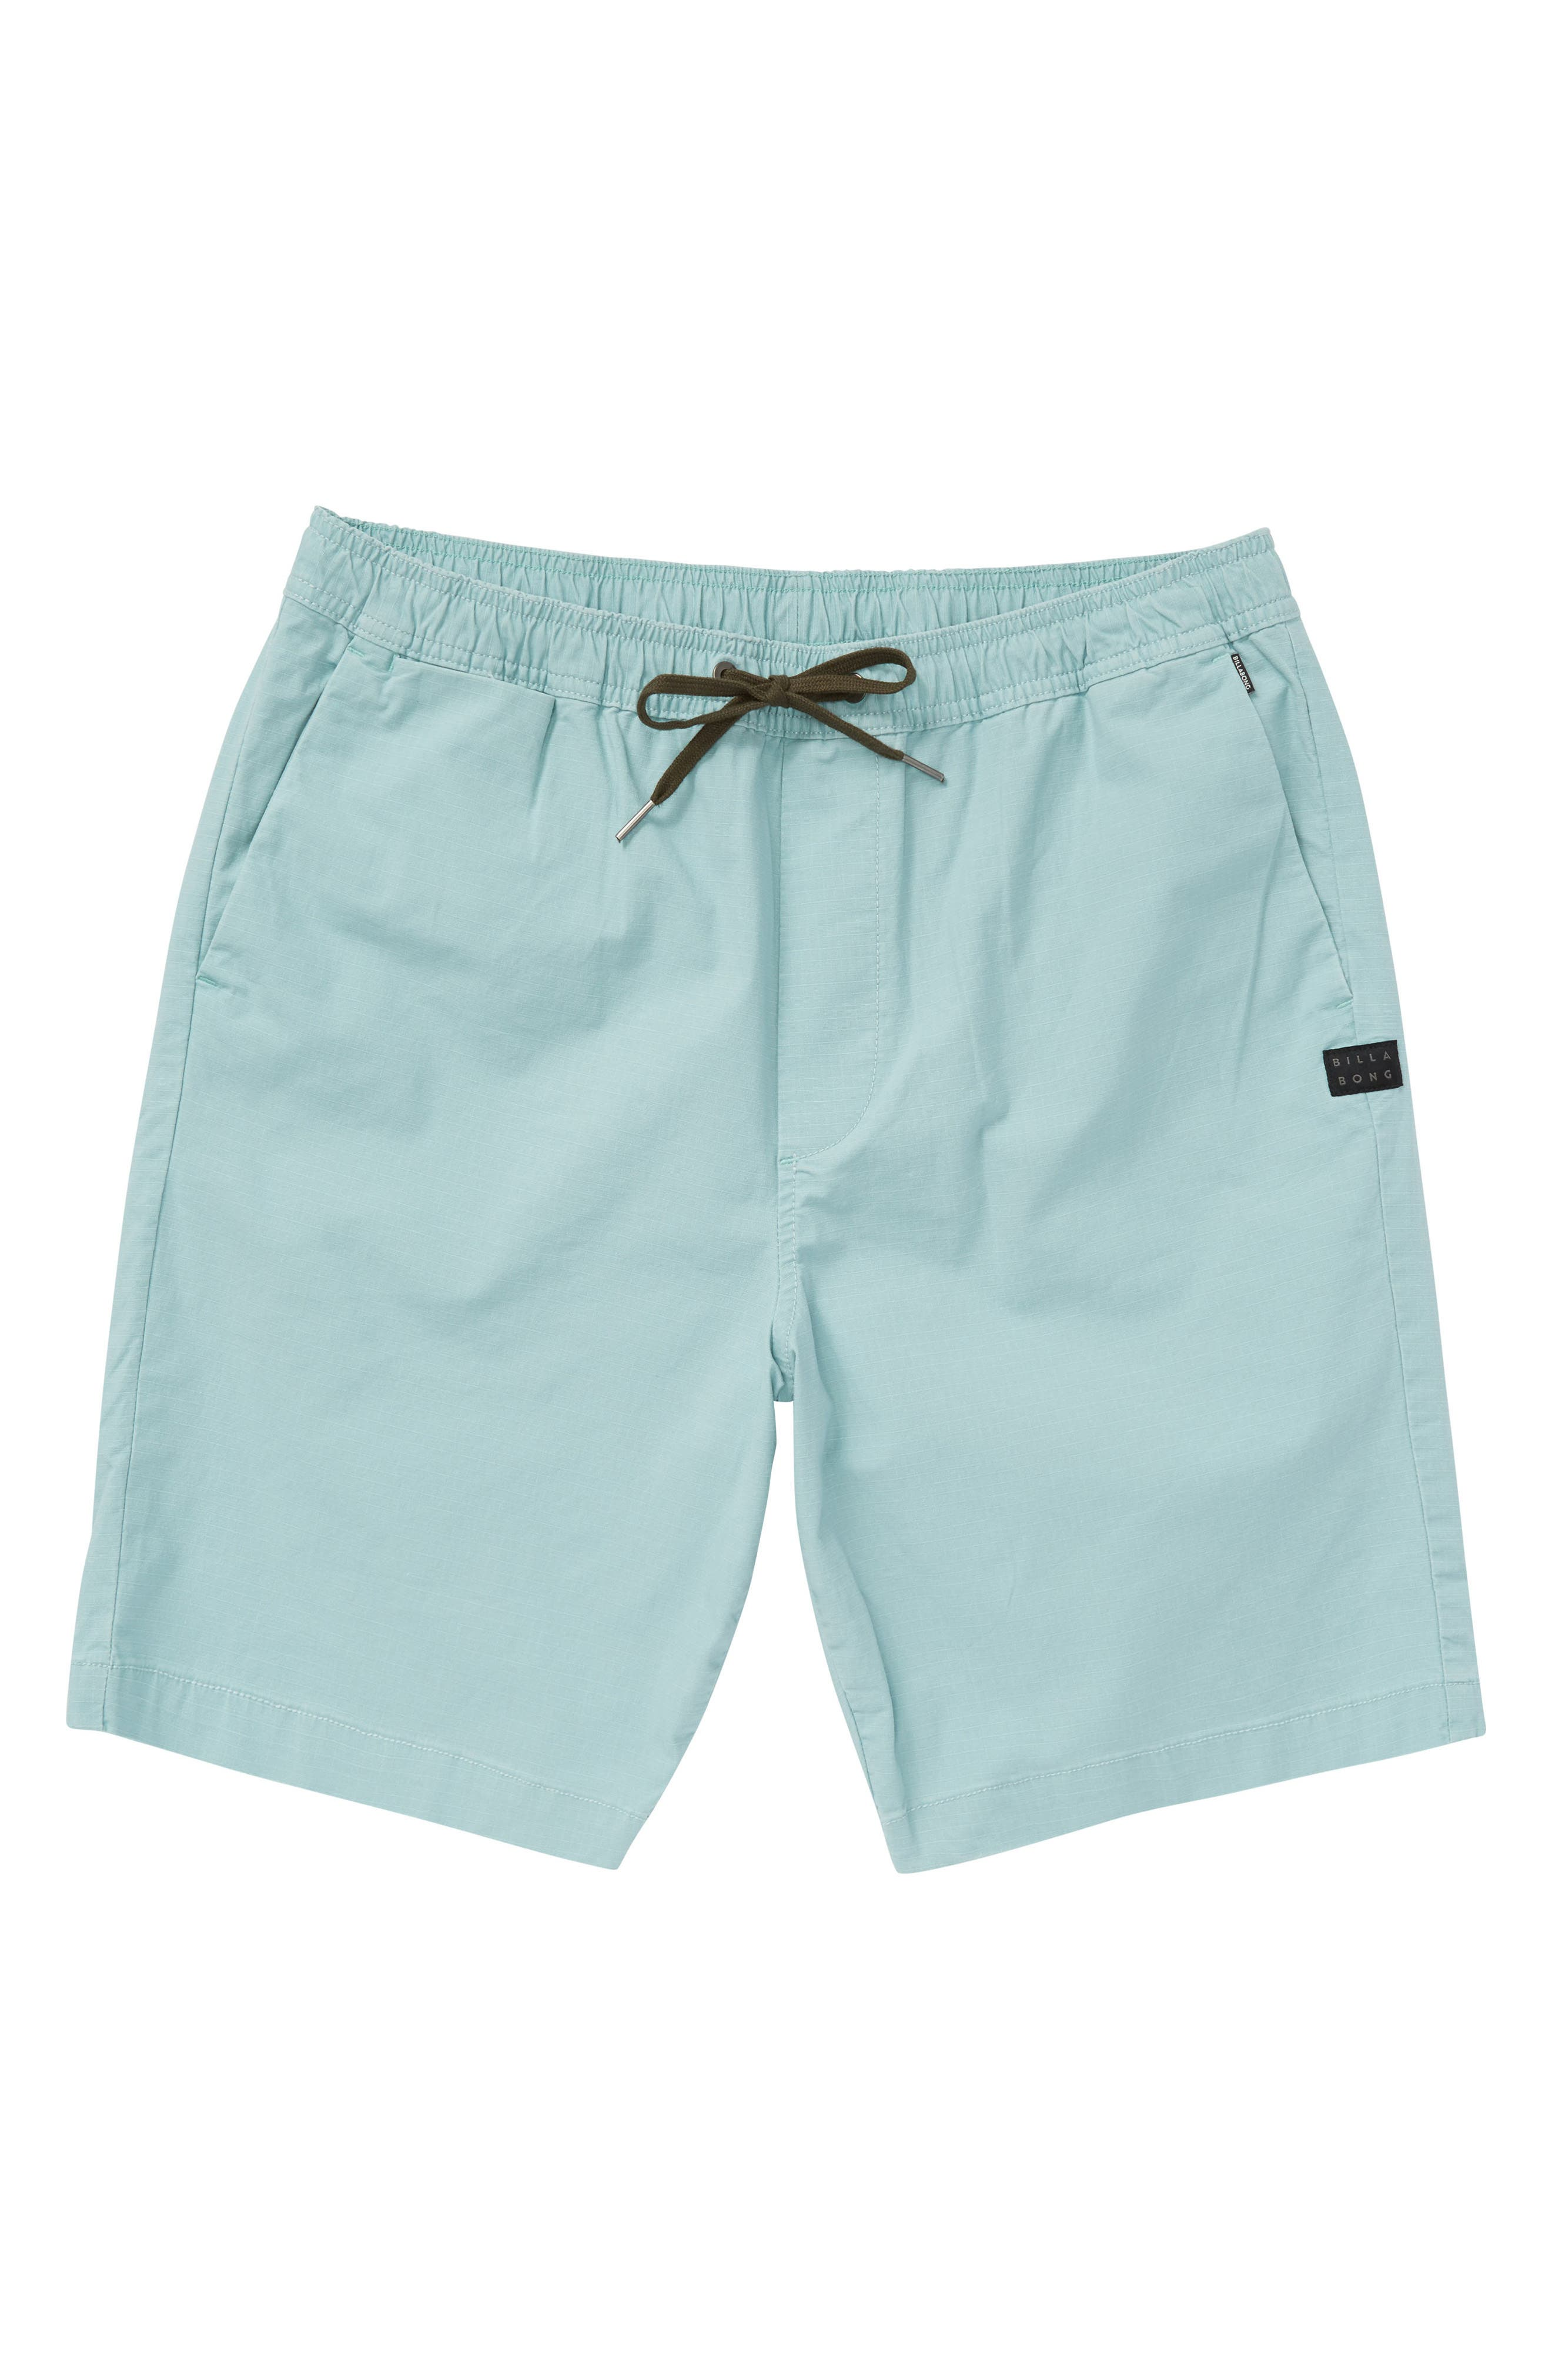 Alternate Image 1 Selected - Billabong Larry Layback Shorts (Little Boys)